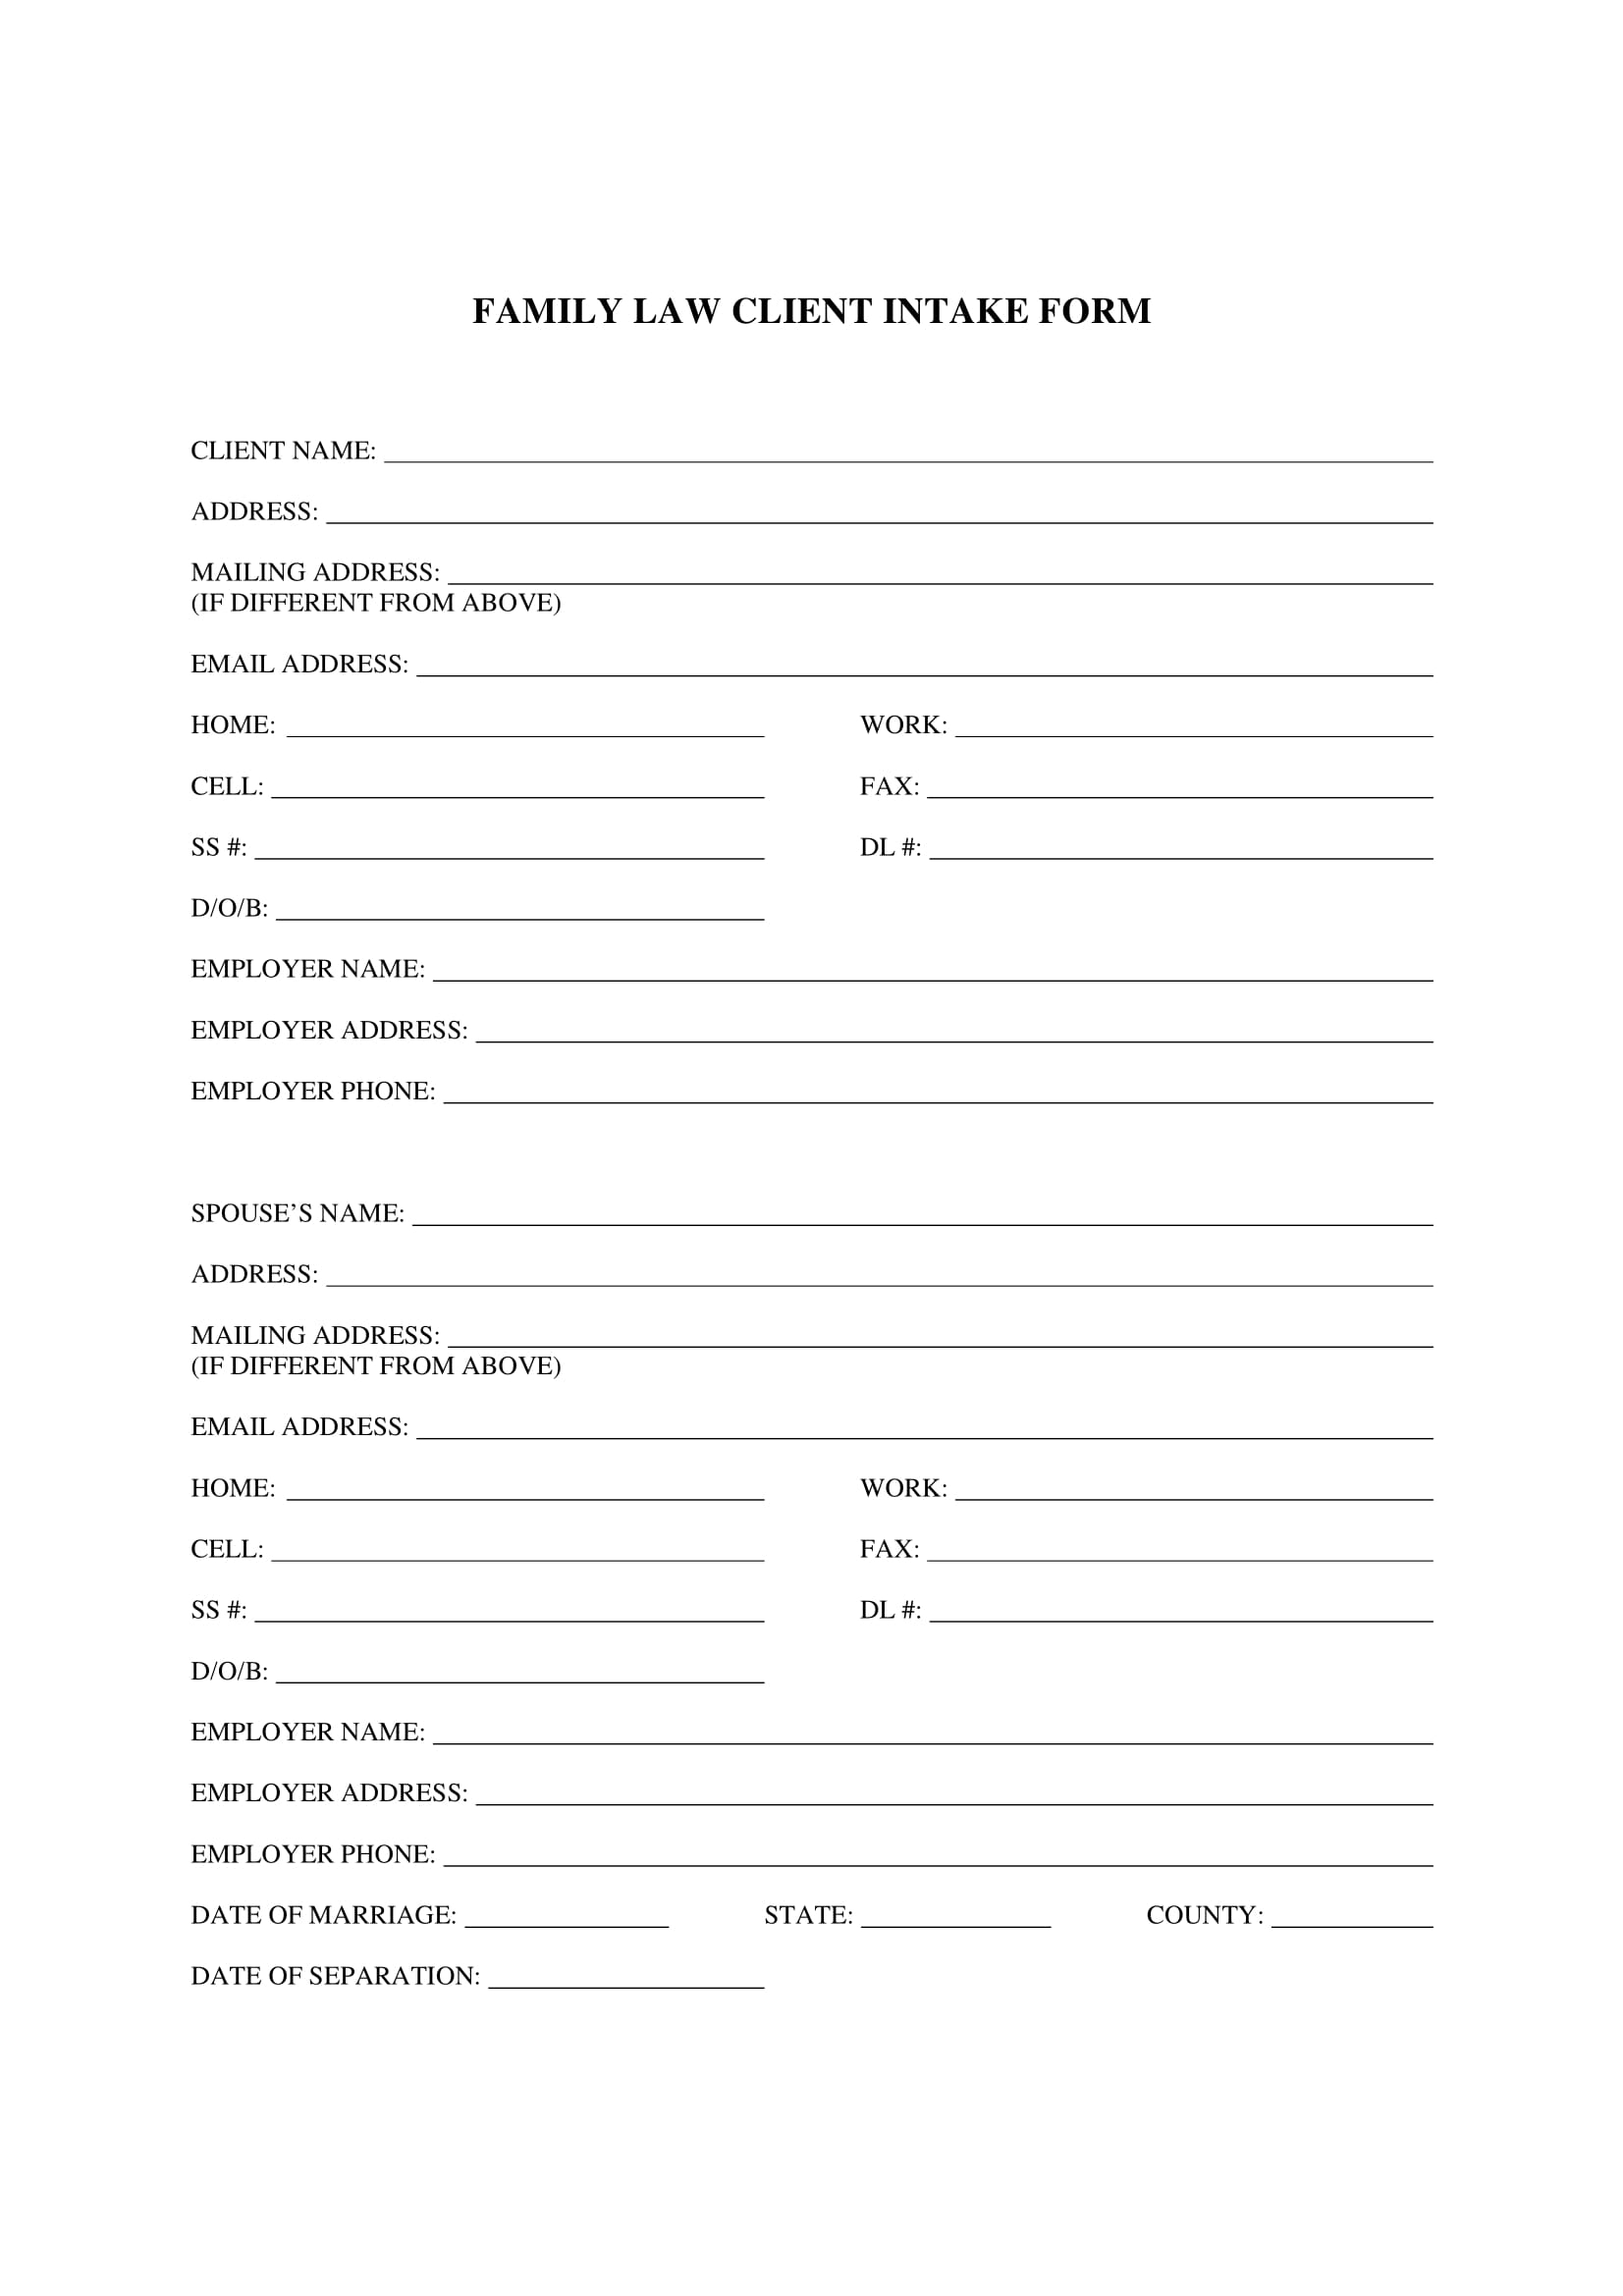 family law client intake form 1